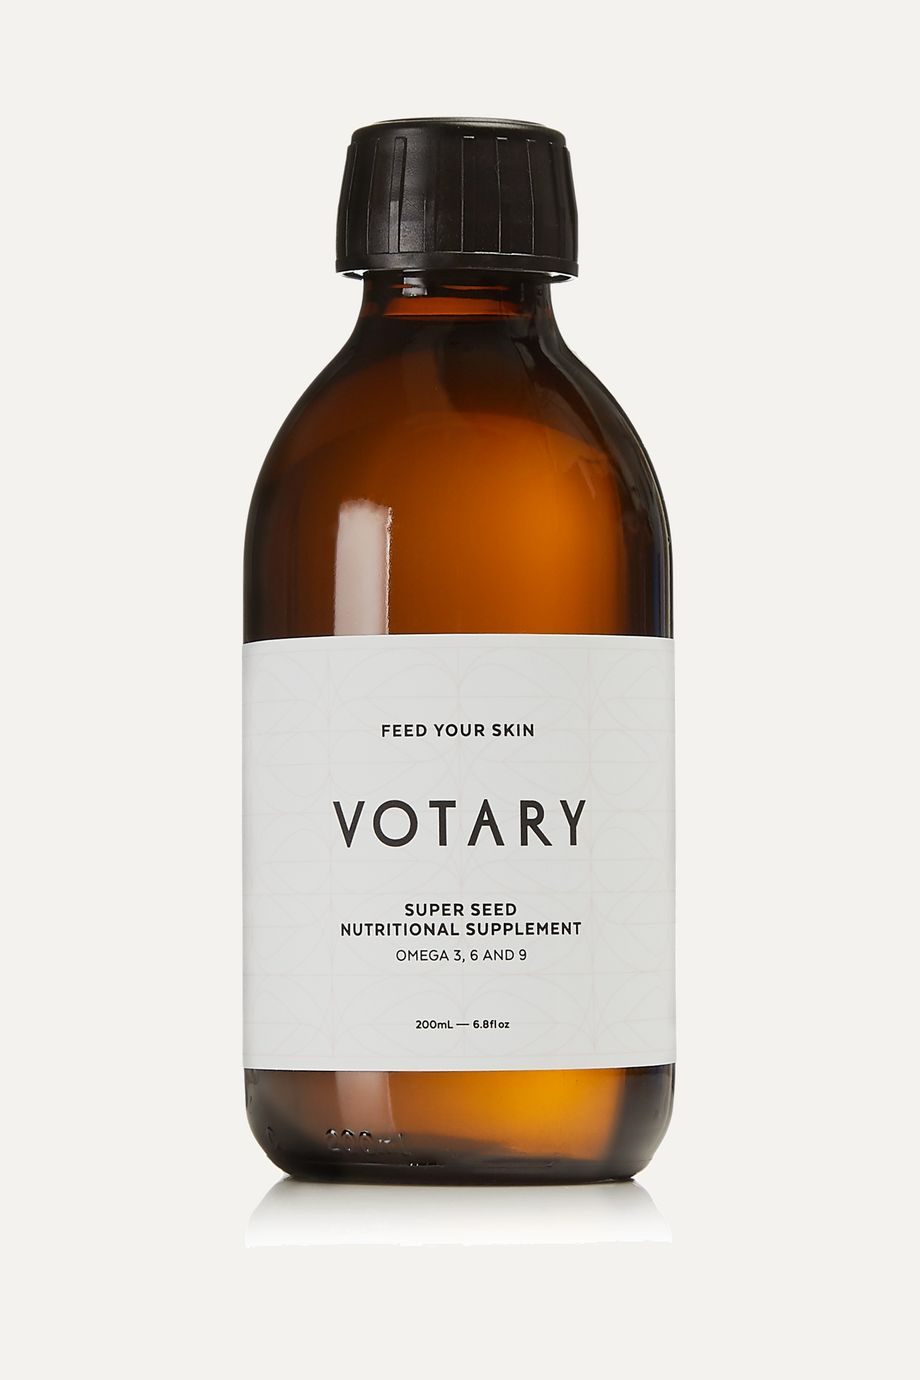 Votary Super Seed Supplement, 200ml